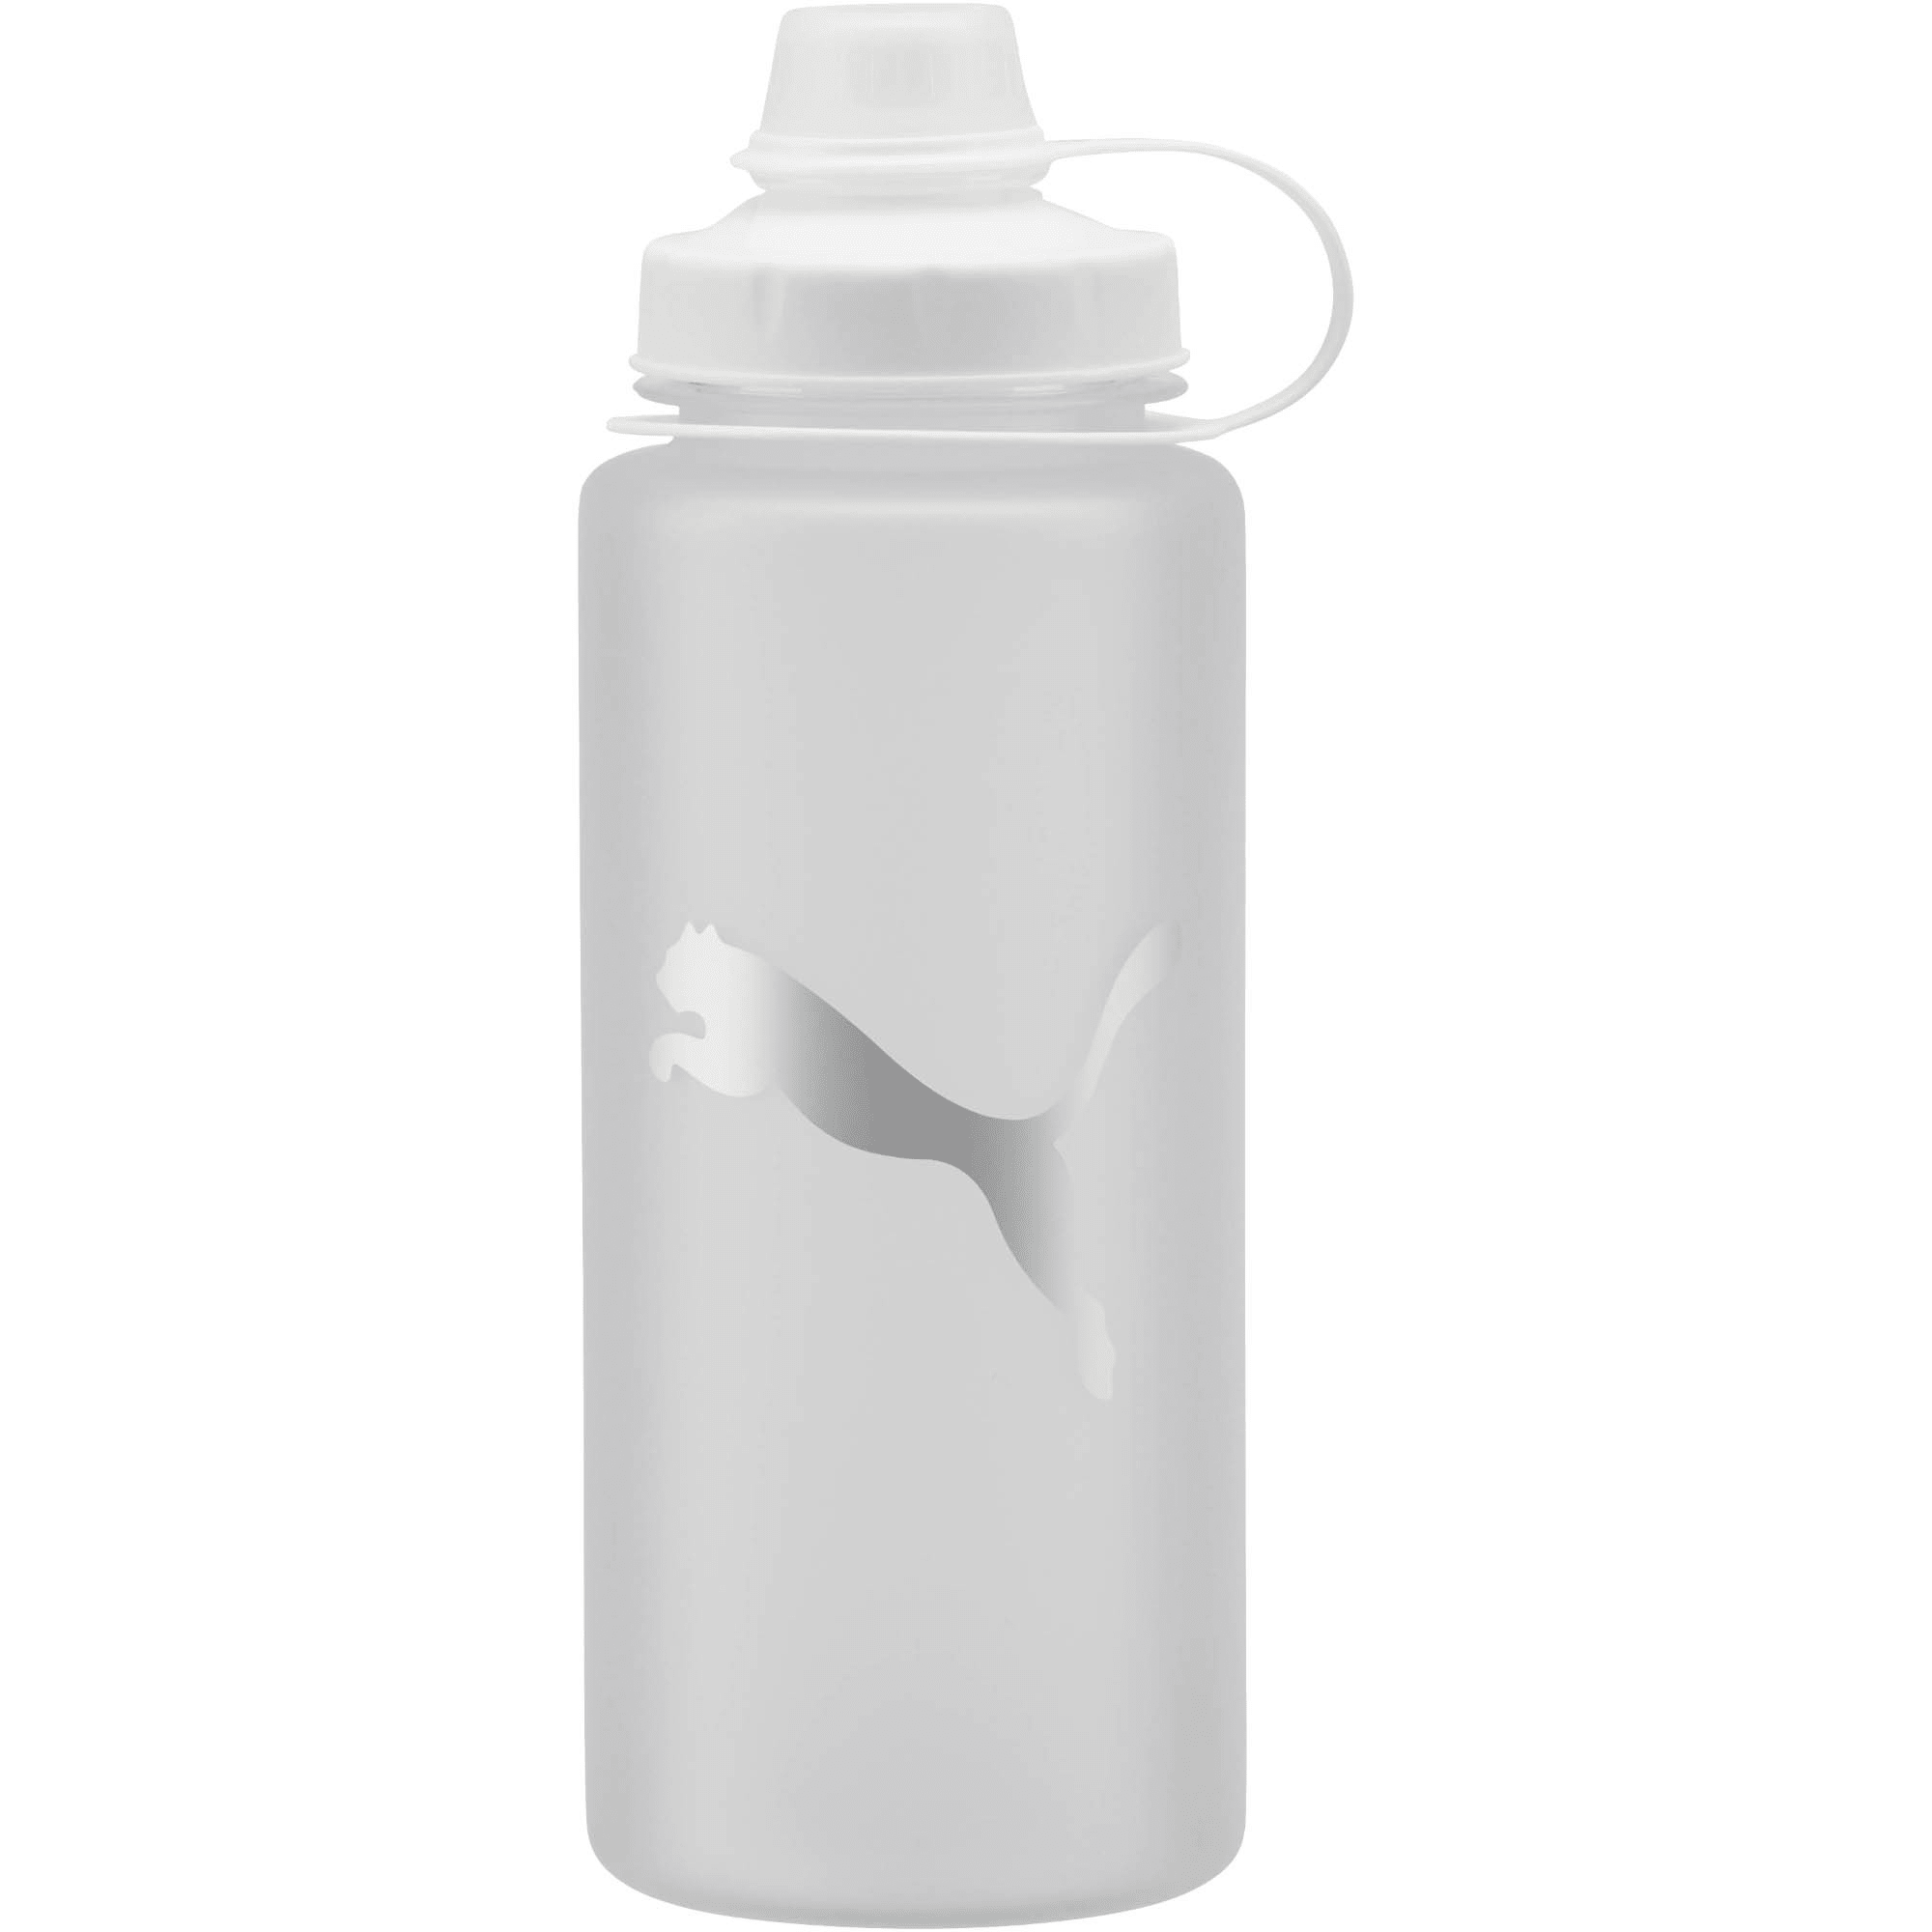 Thumbnail 1 of PUMA Little Shot Frosted 24 oz. Water Bottle, Frosted Silver, medium